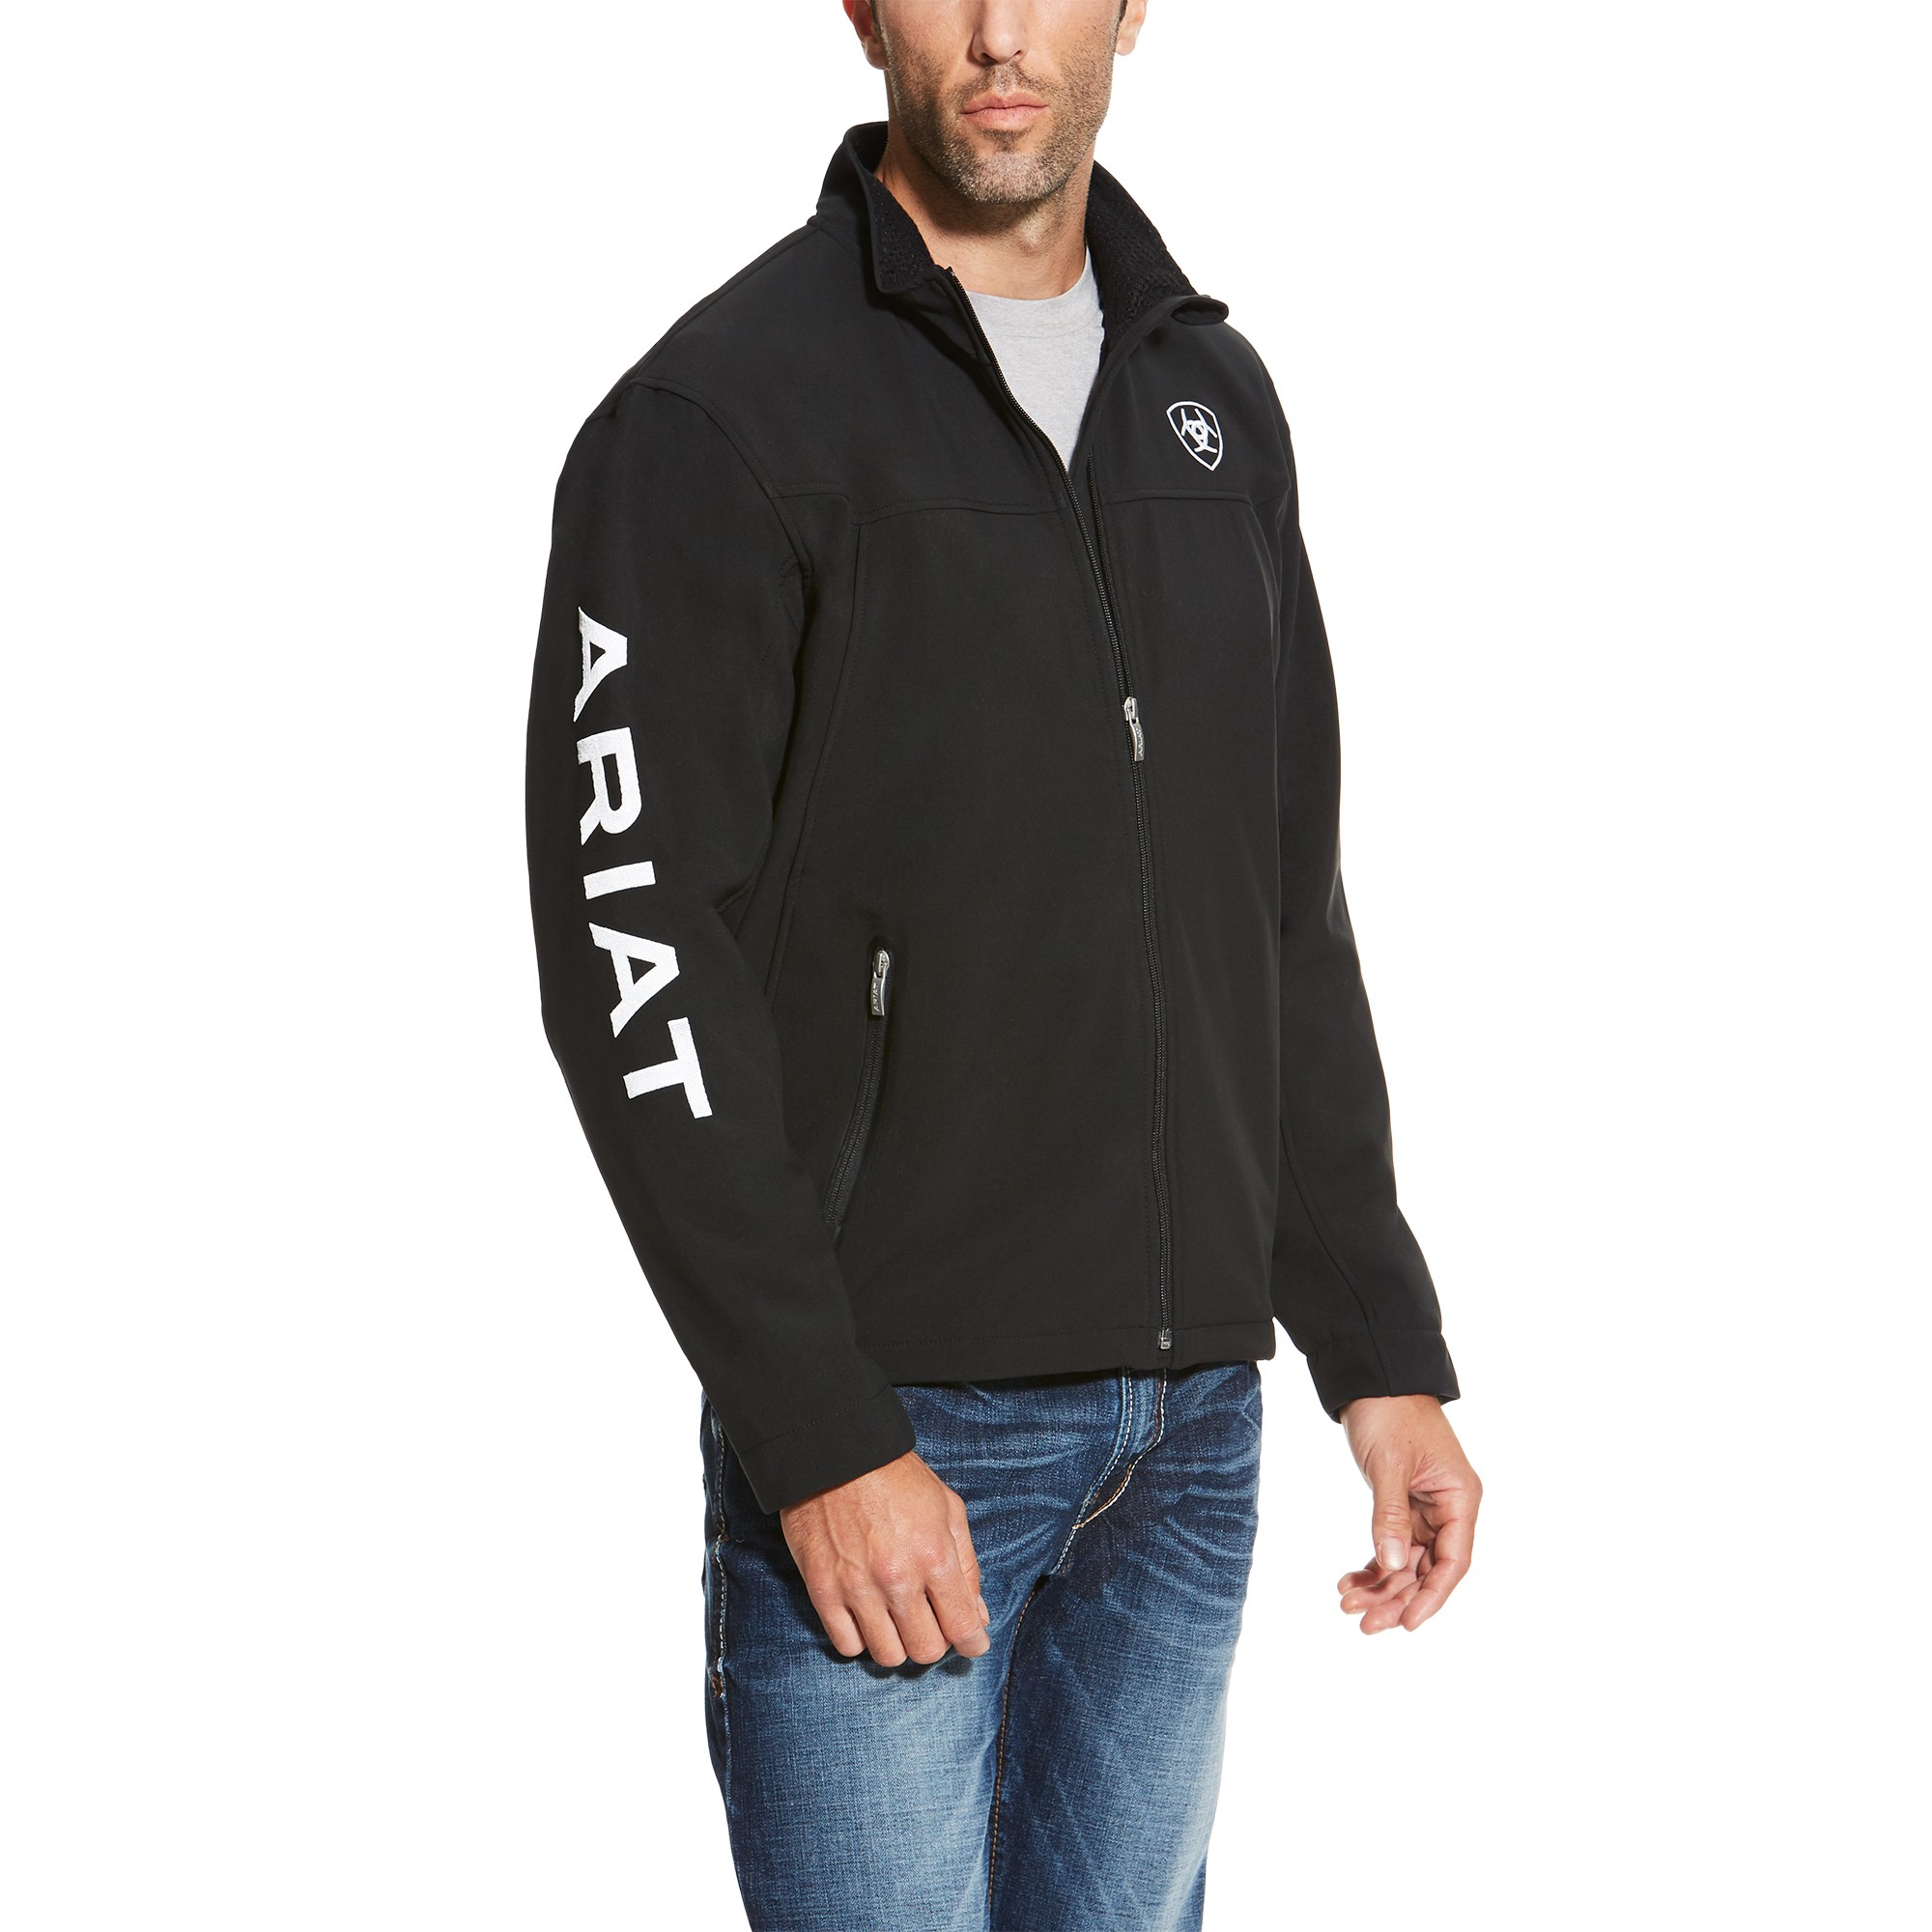 Ariat Men S New Team Softshell Jacket Black Wychanger Barton